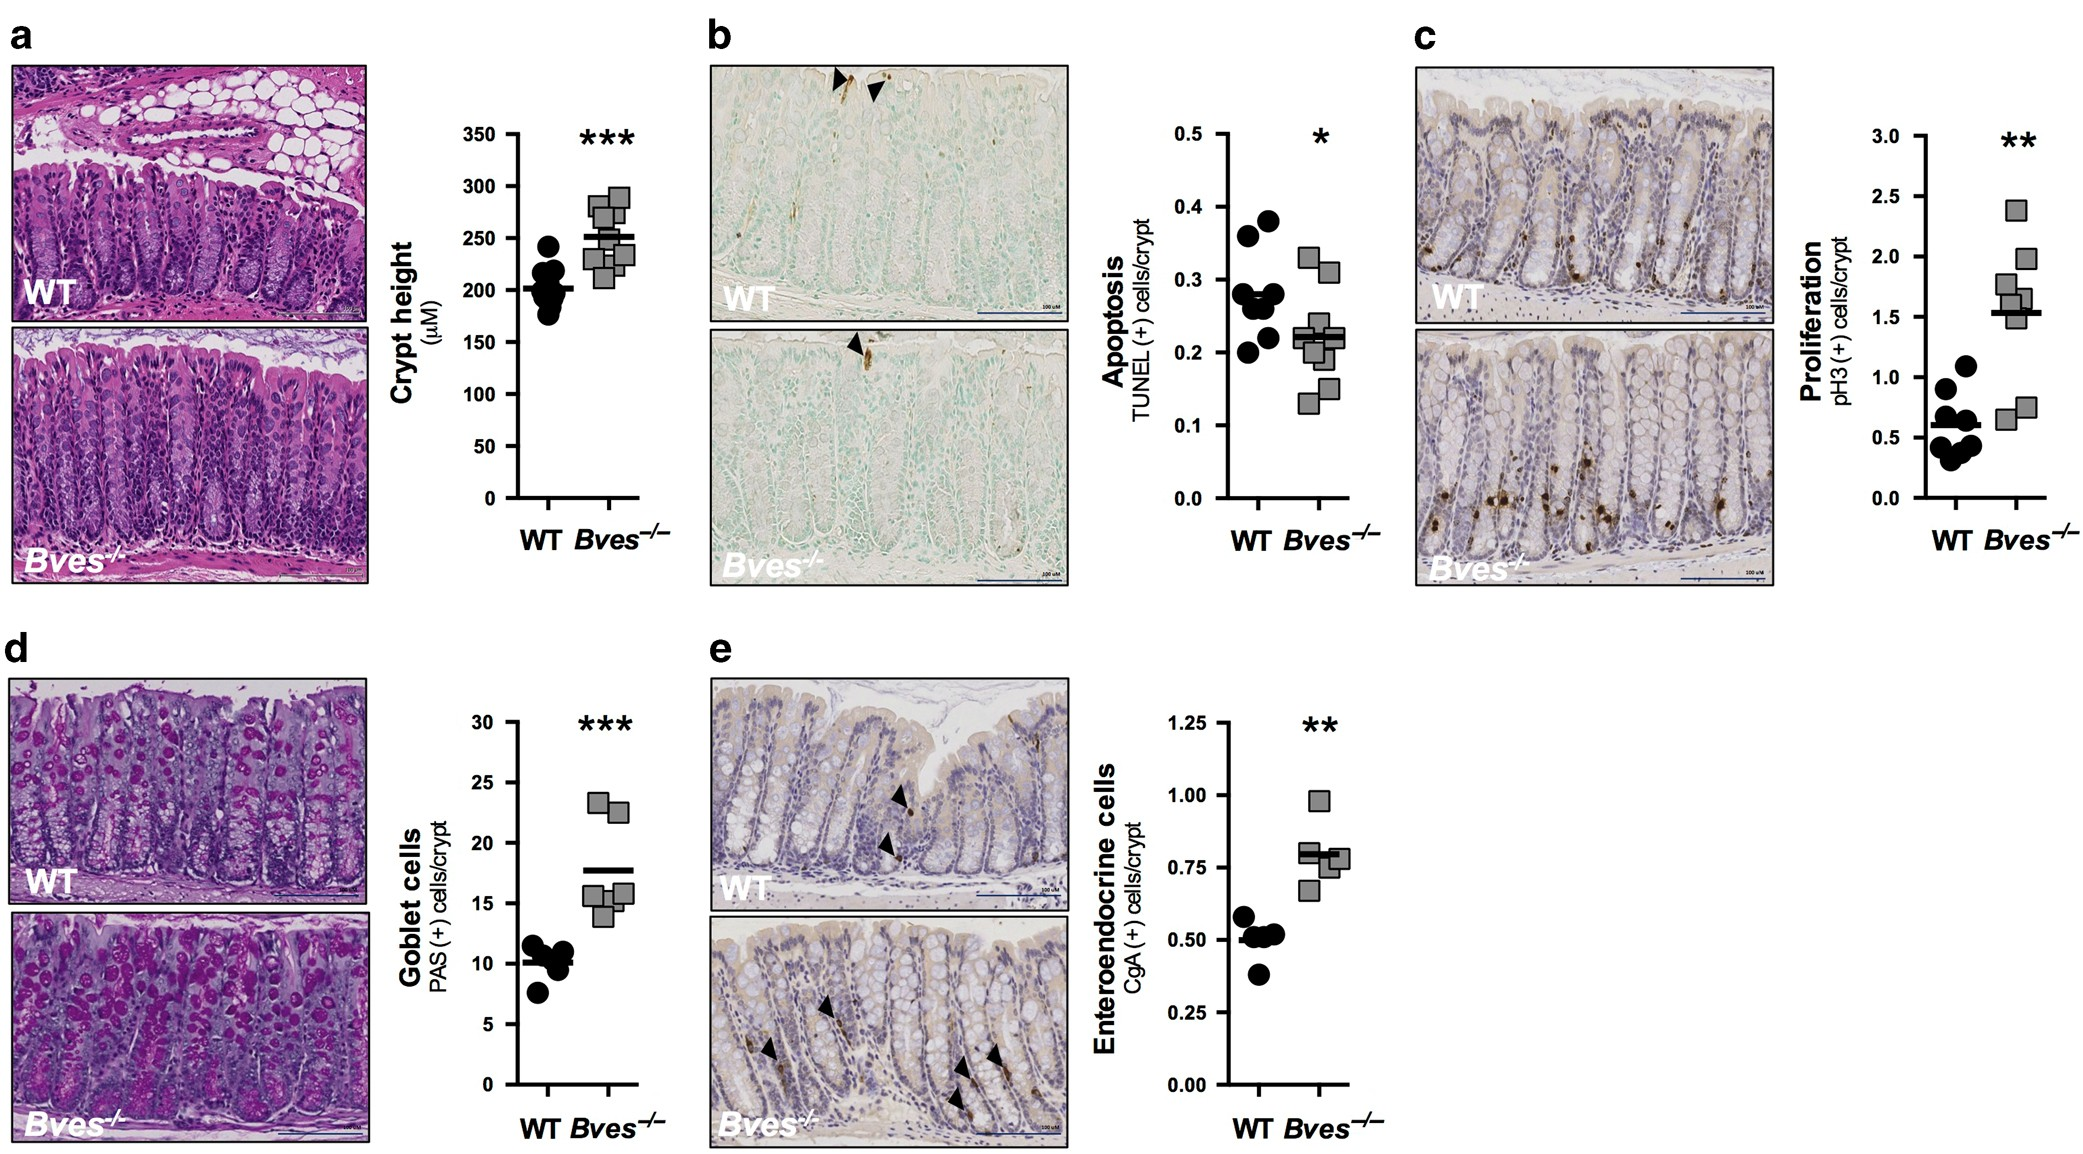 BVES is required for maintenance of colonic epithelial integrity in